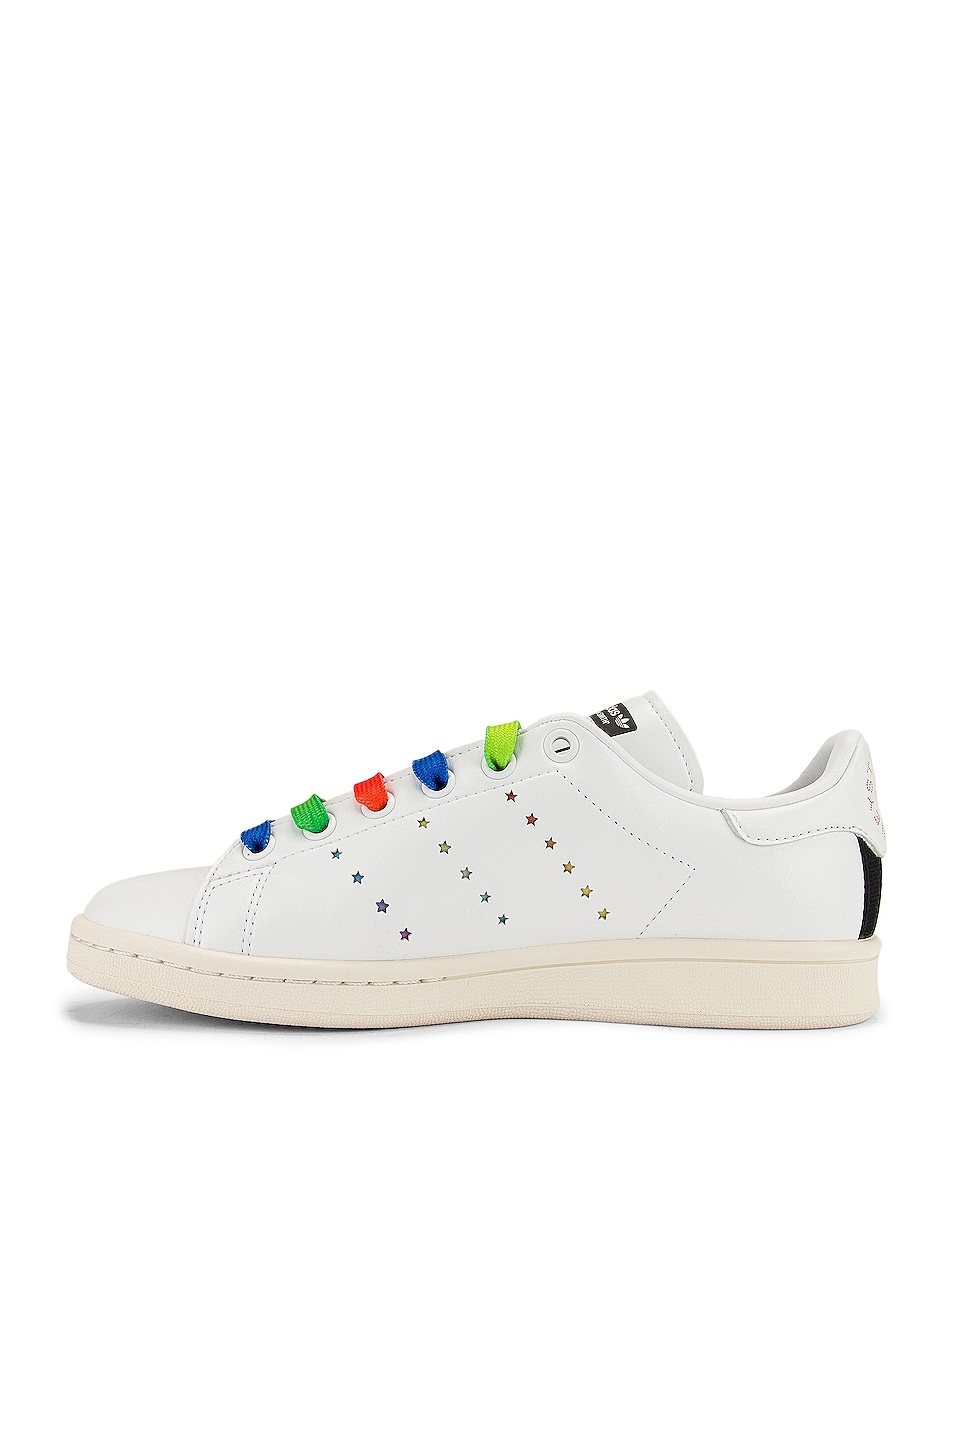 Image 5 of Stella McCartney Stan Smith Sneakers in White & Multicolor